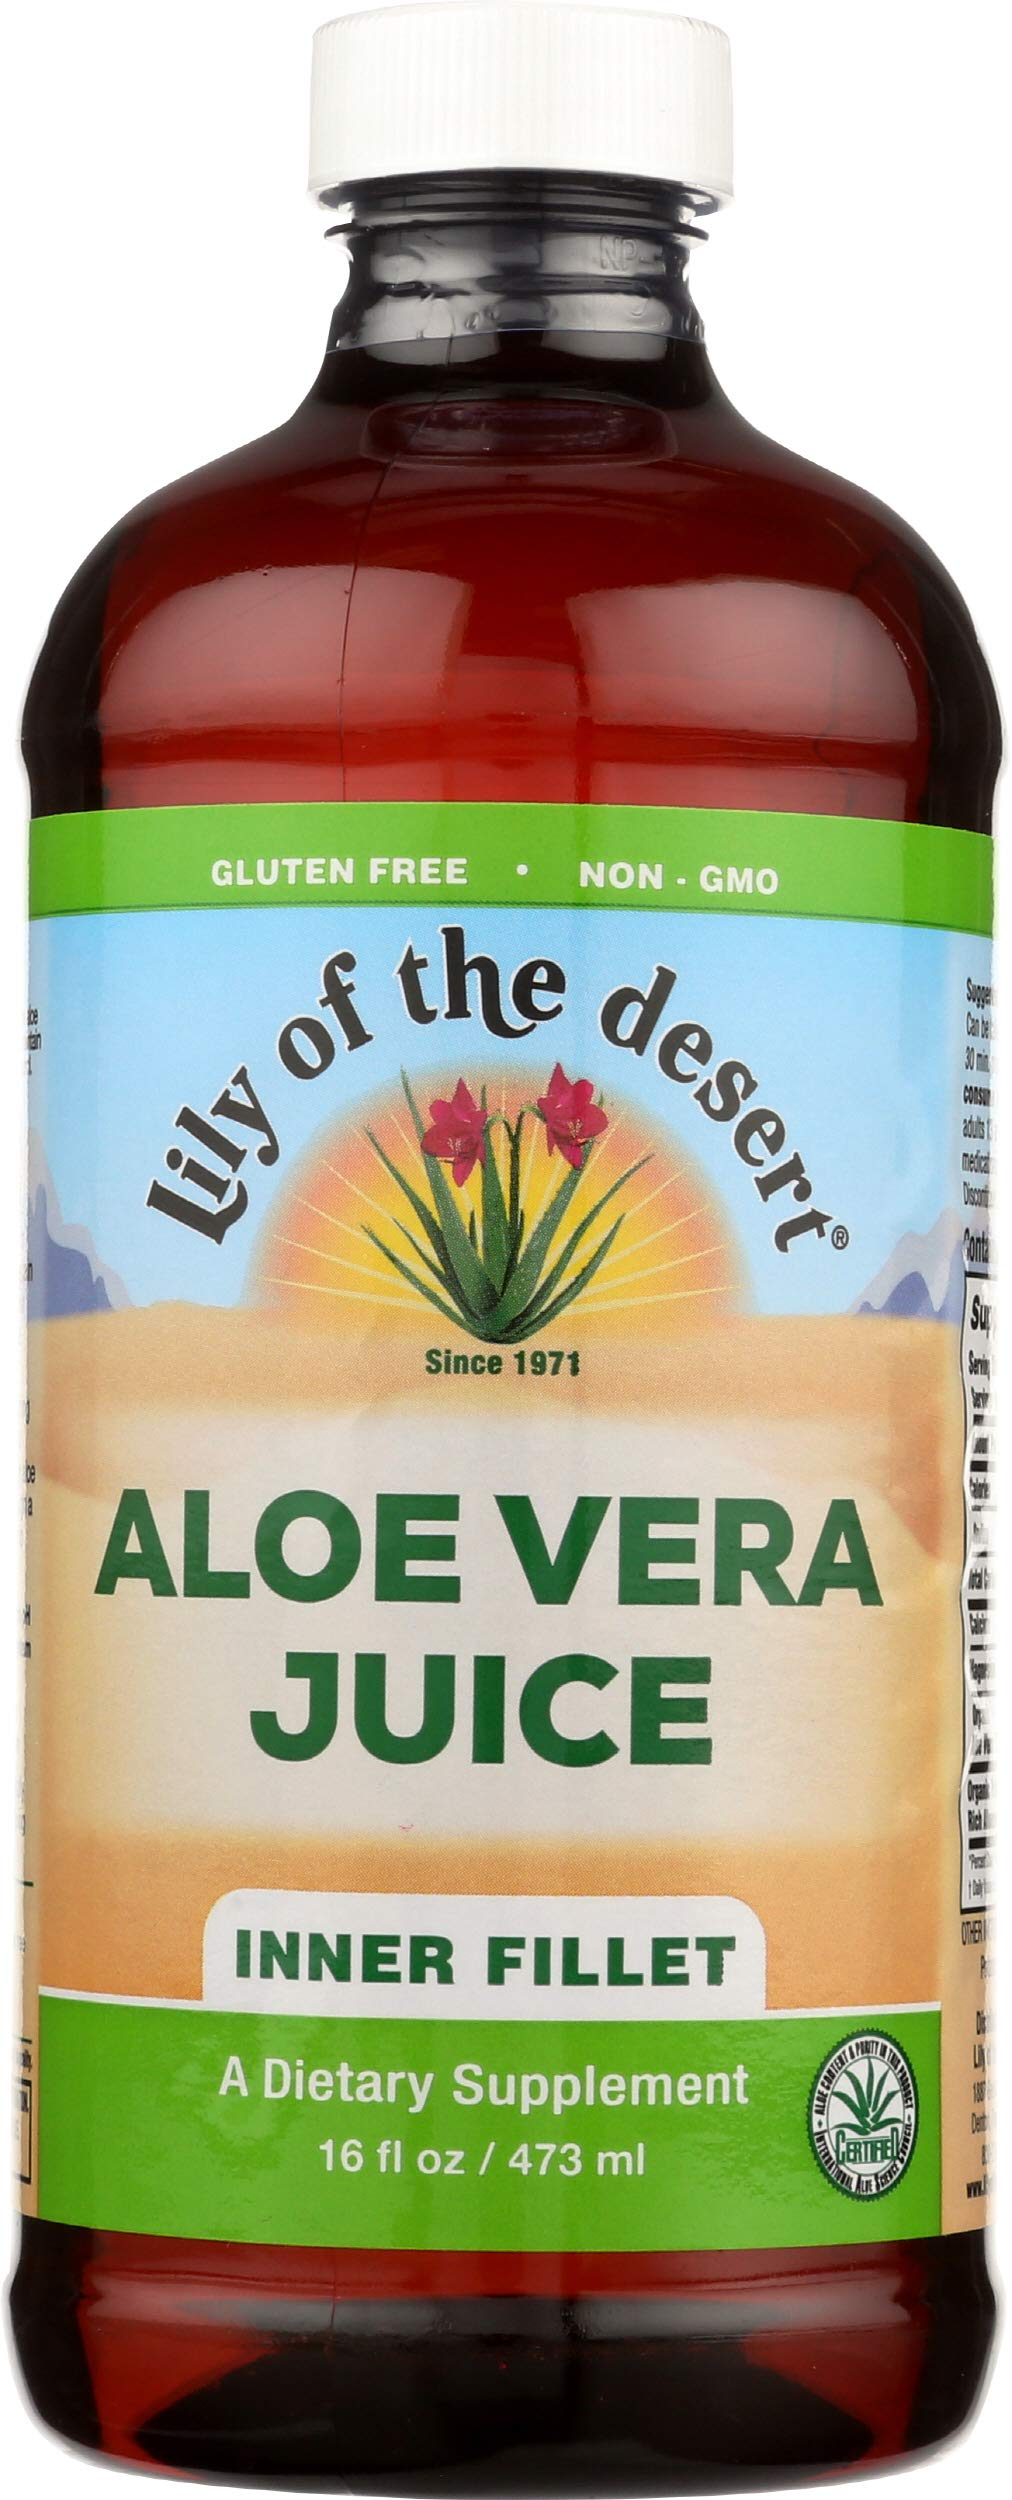 Lily Of The Desert Aloe Vera Juice, 16 Fl Oz